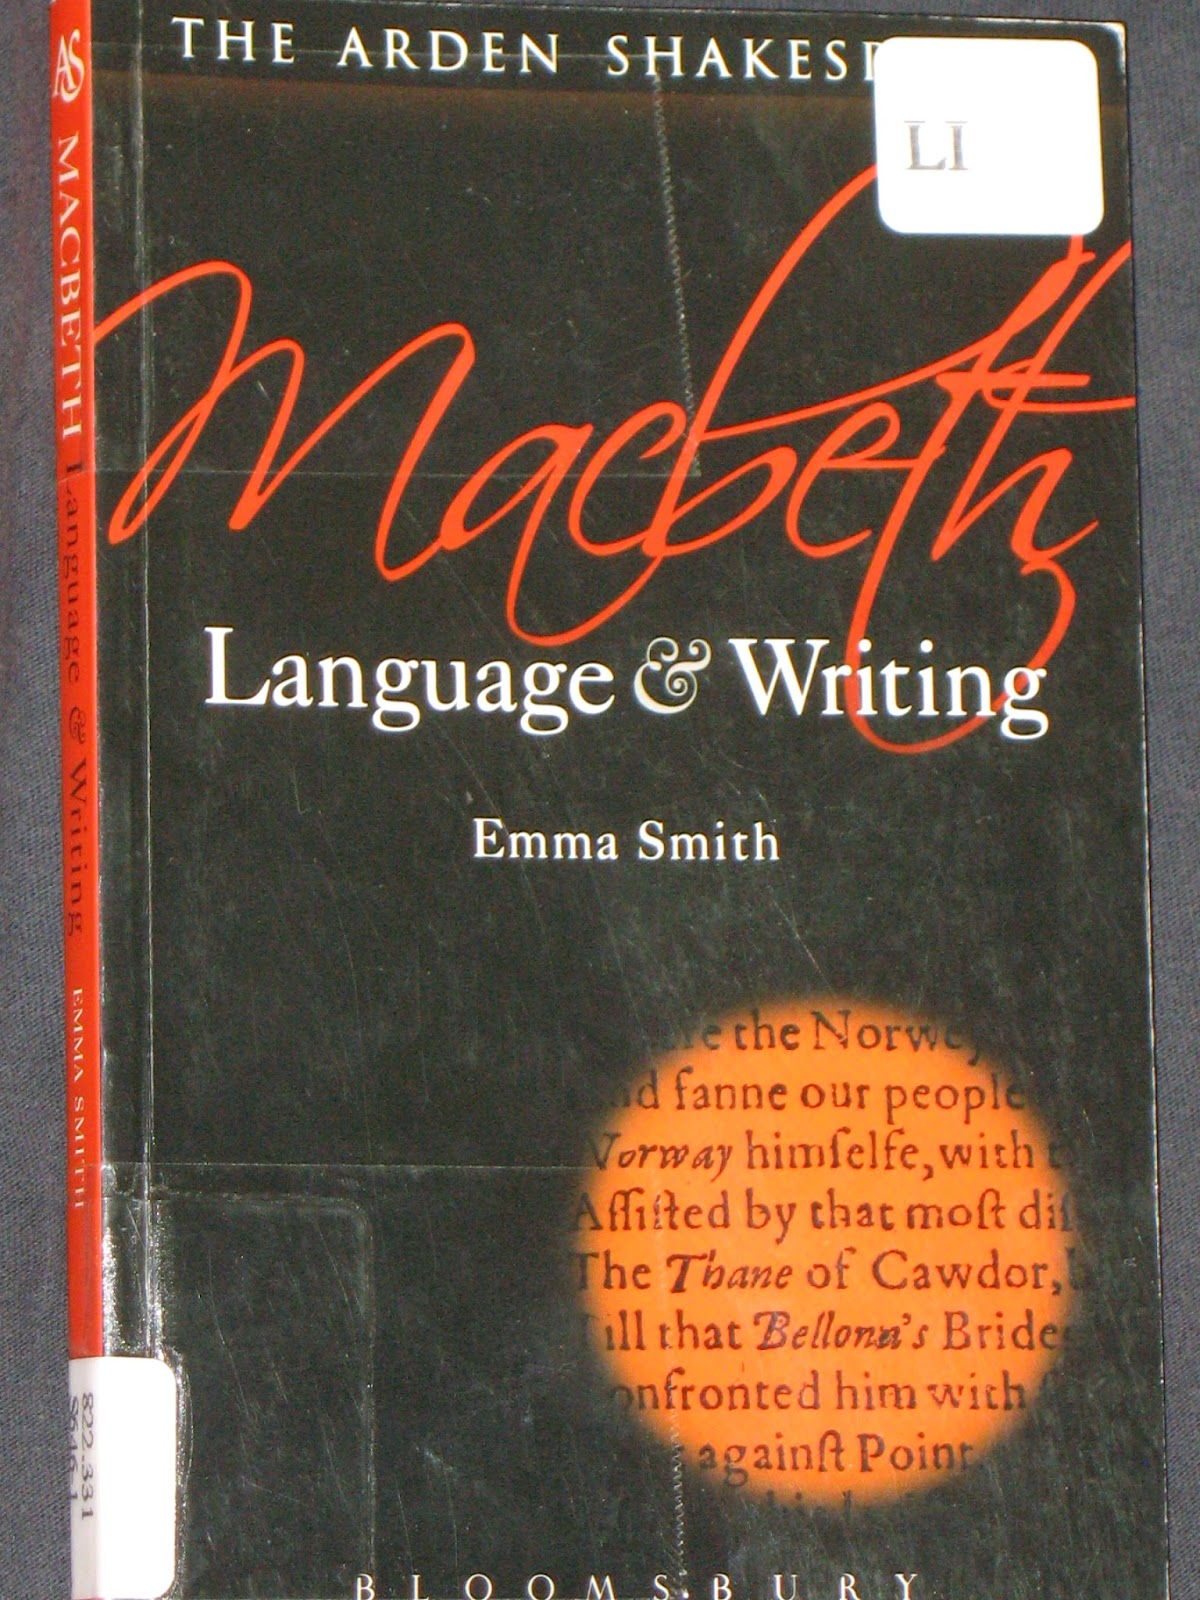 mostly shakespeare but also some occasional nonsense macbeth language and writing by emma smith this volume is aimed at students and focuses on the language of the play regarding the belief that